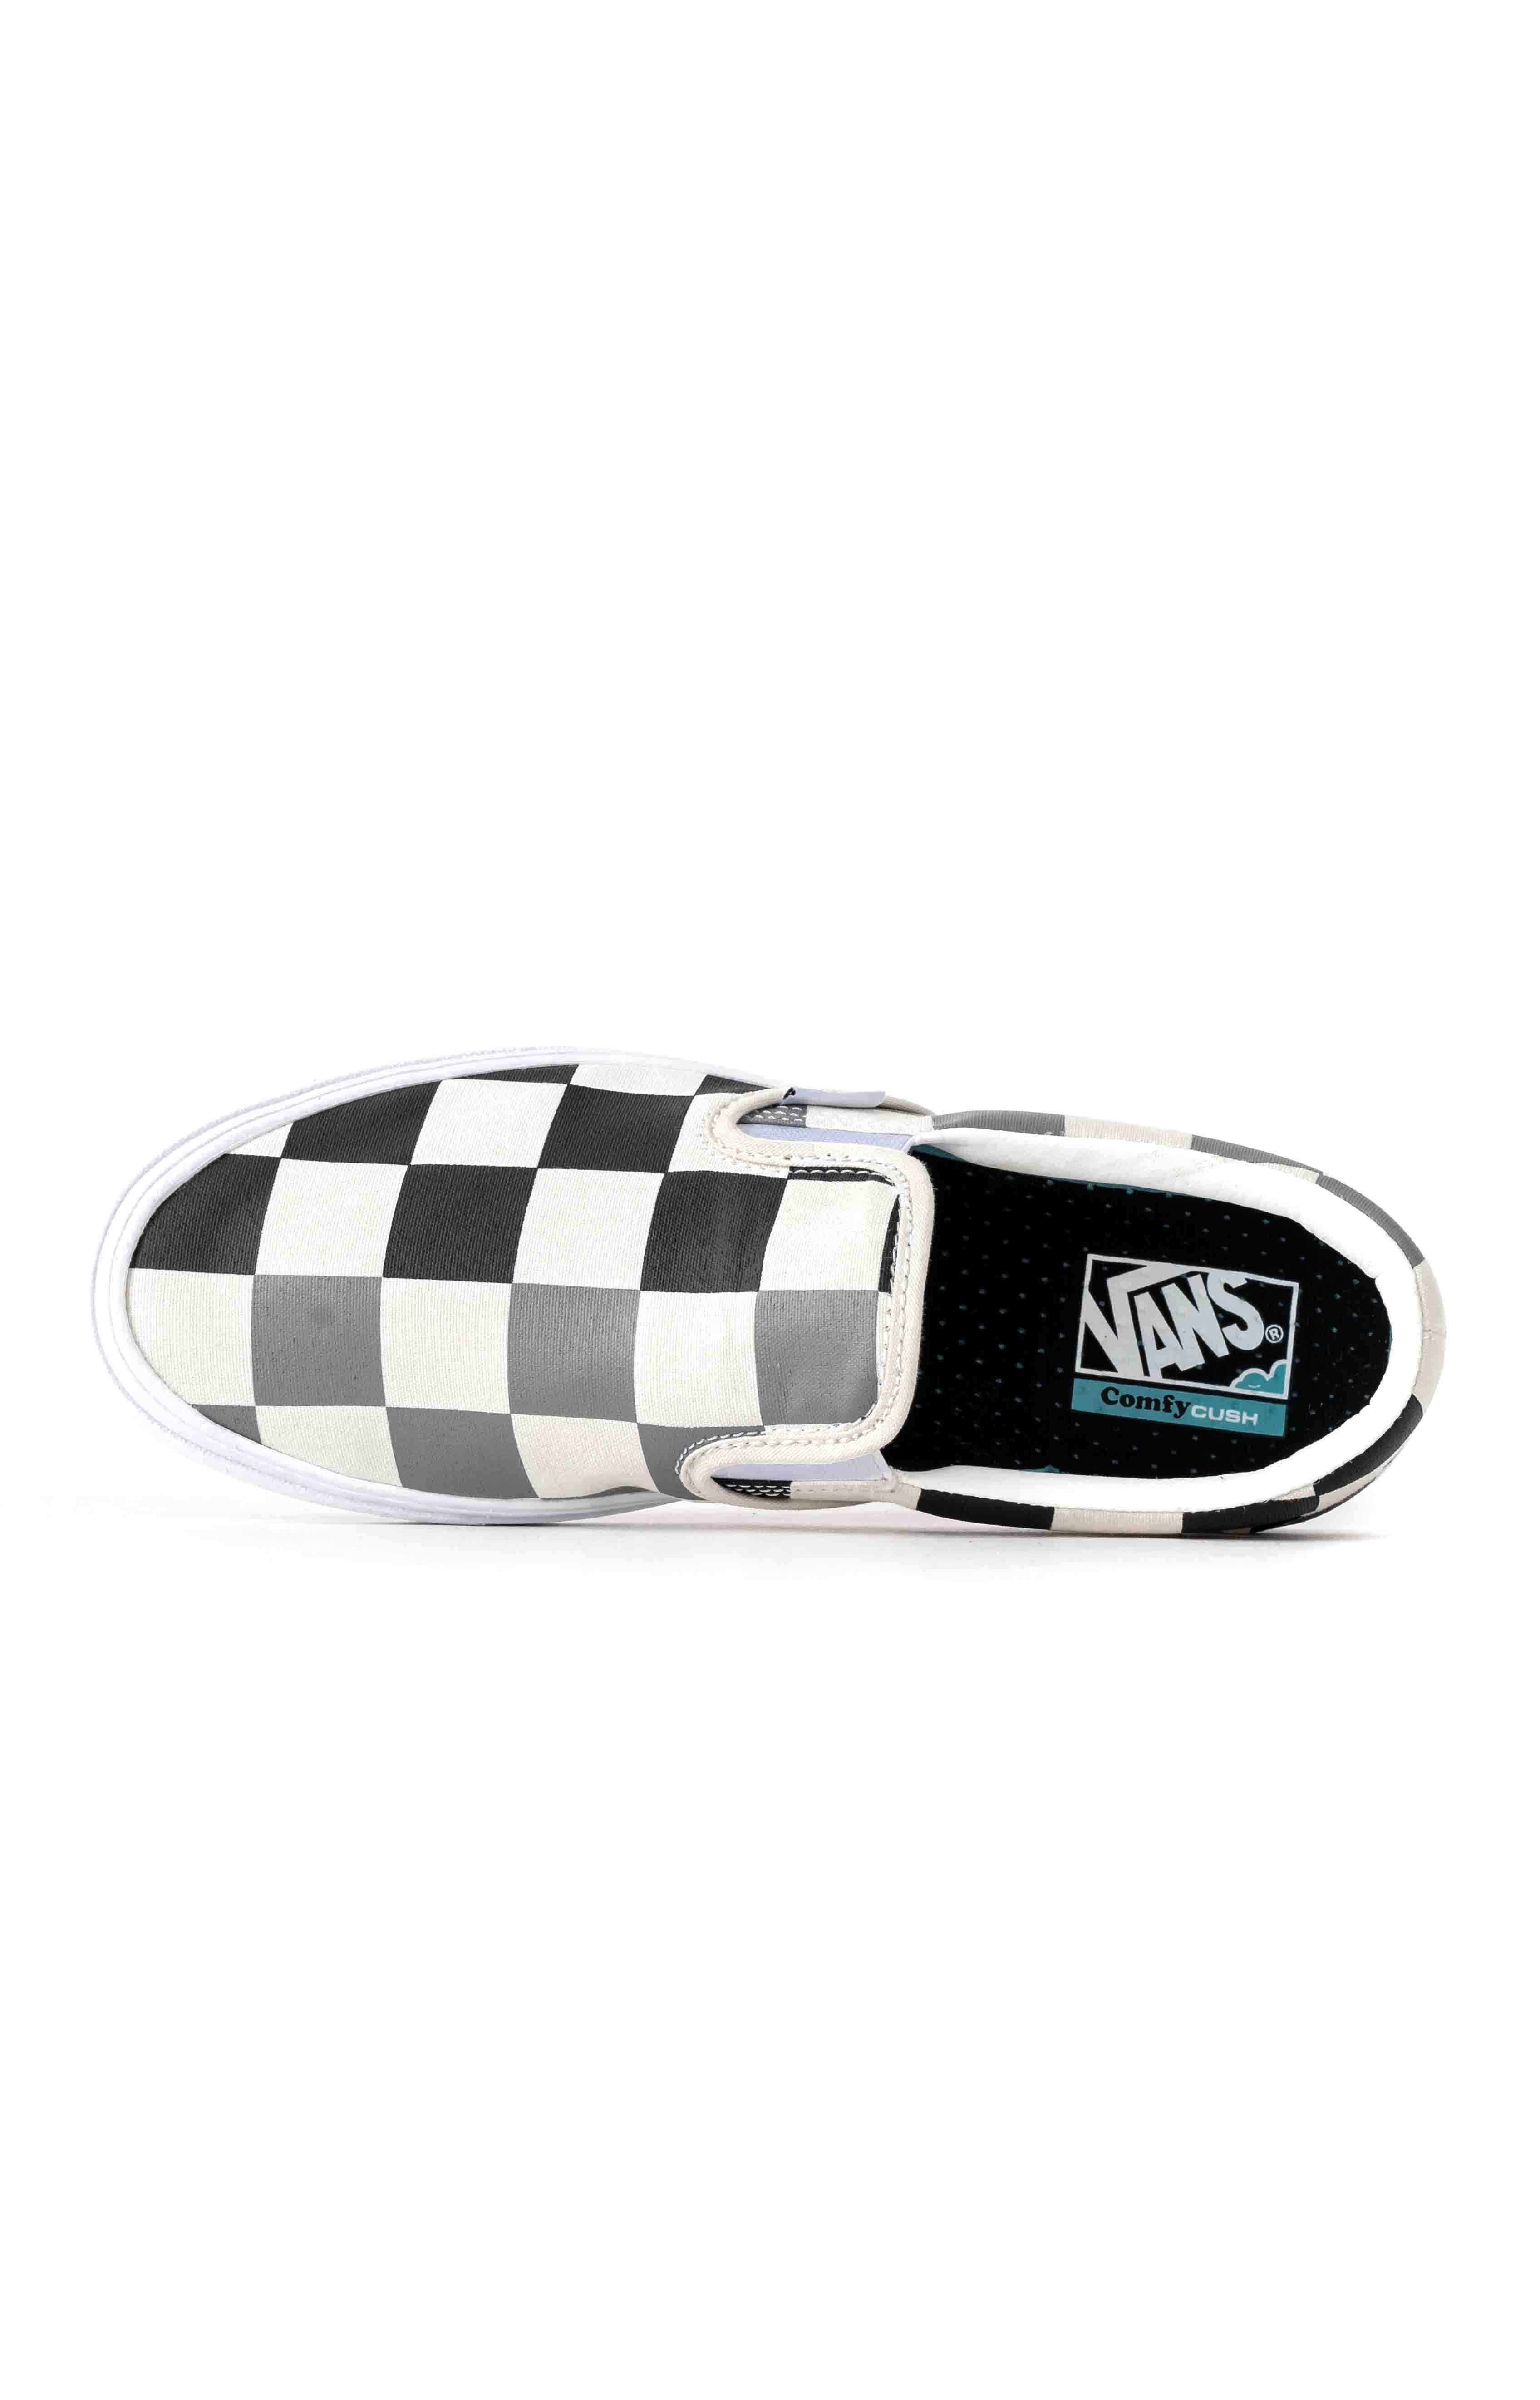 (WMDWXA) Half Big Checker ComfyCush Slip-On Shoe - Black/Grey 3